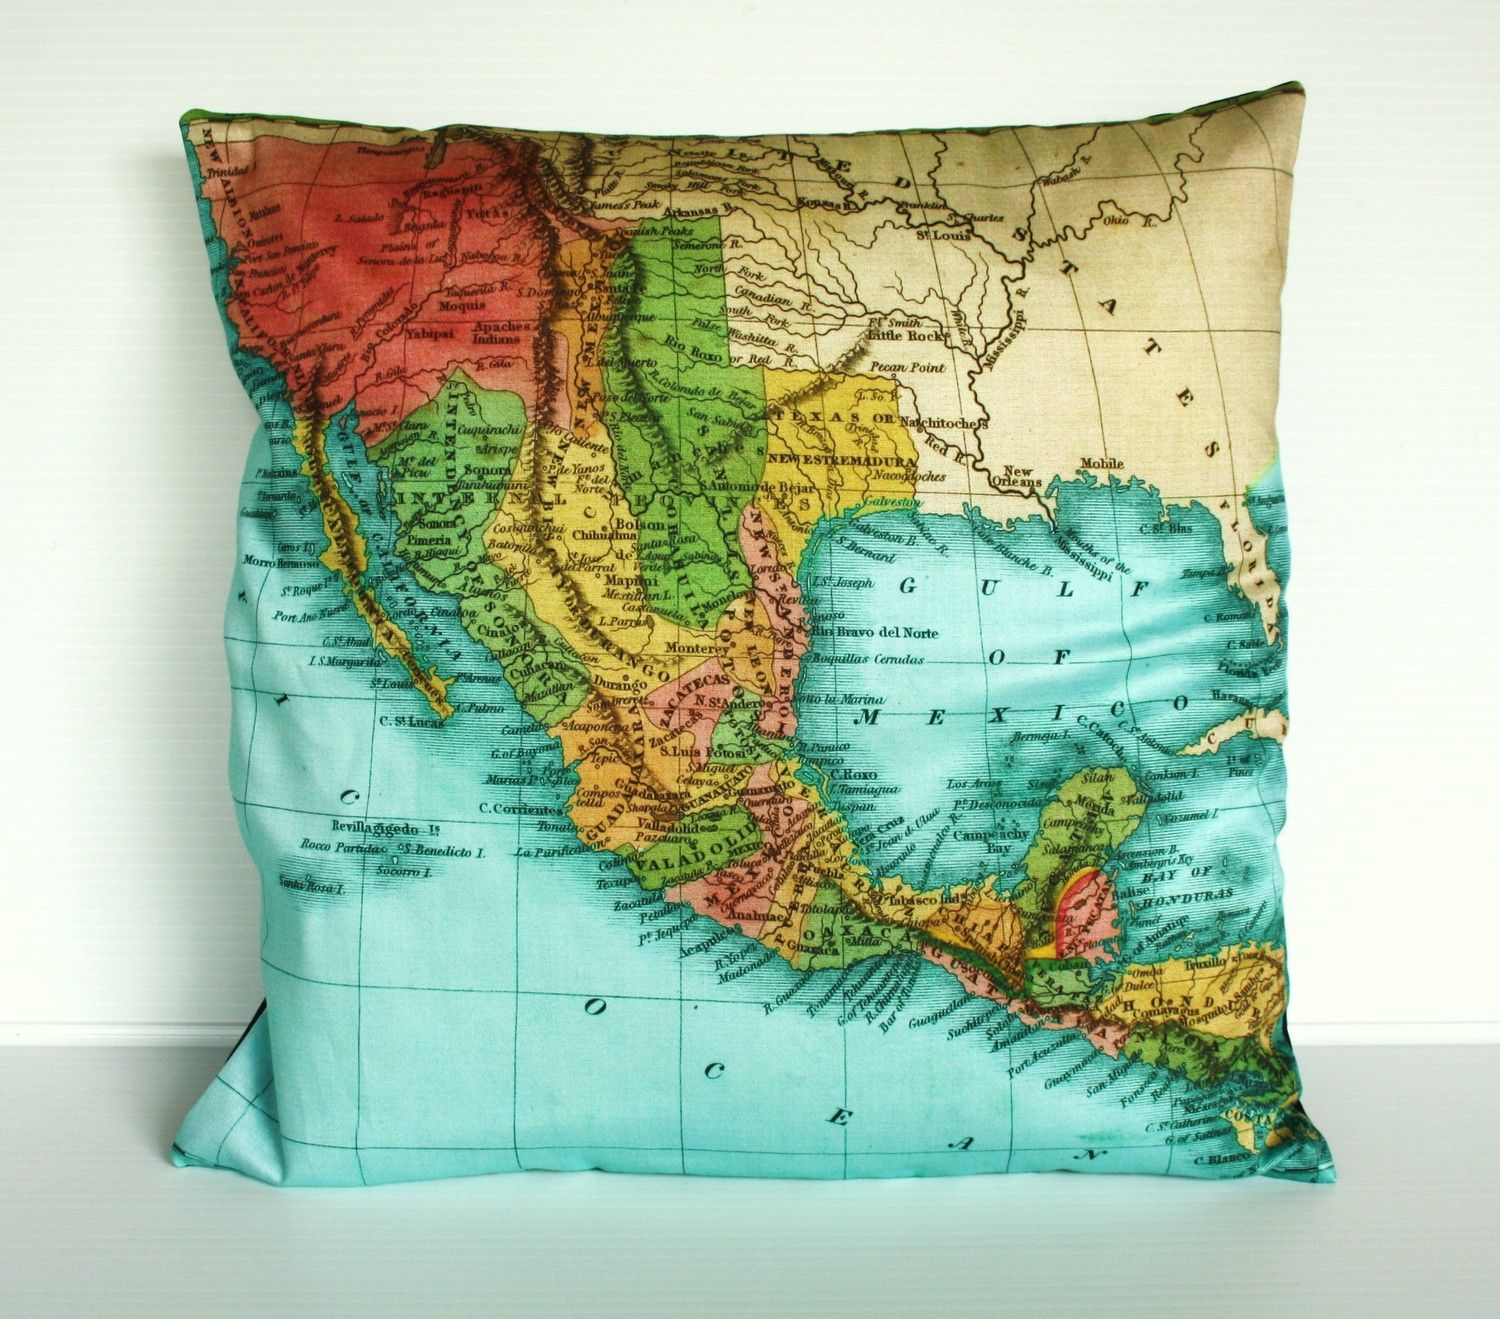 Cushion cover map pillow mexico map cushion throw pillow organic mexico map cushion atlas organic cotton cushion covers pillow cushion 16 inch via etsy gumiabroncs Choice Image